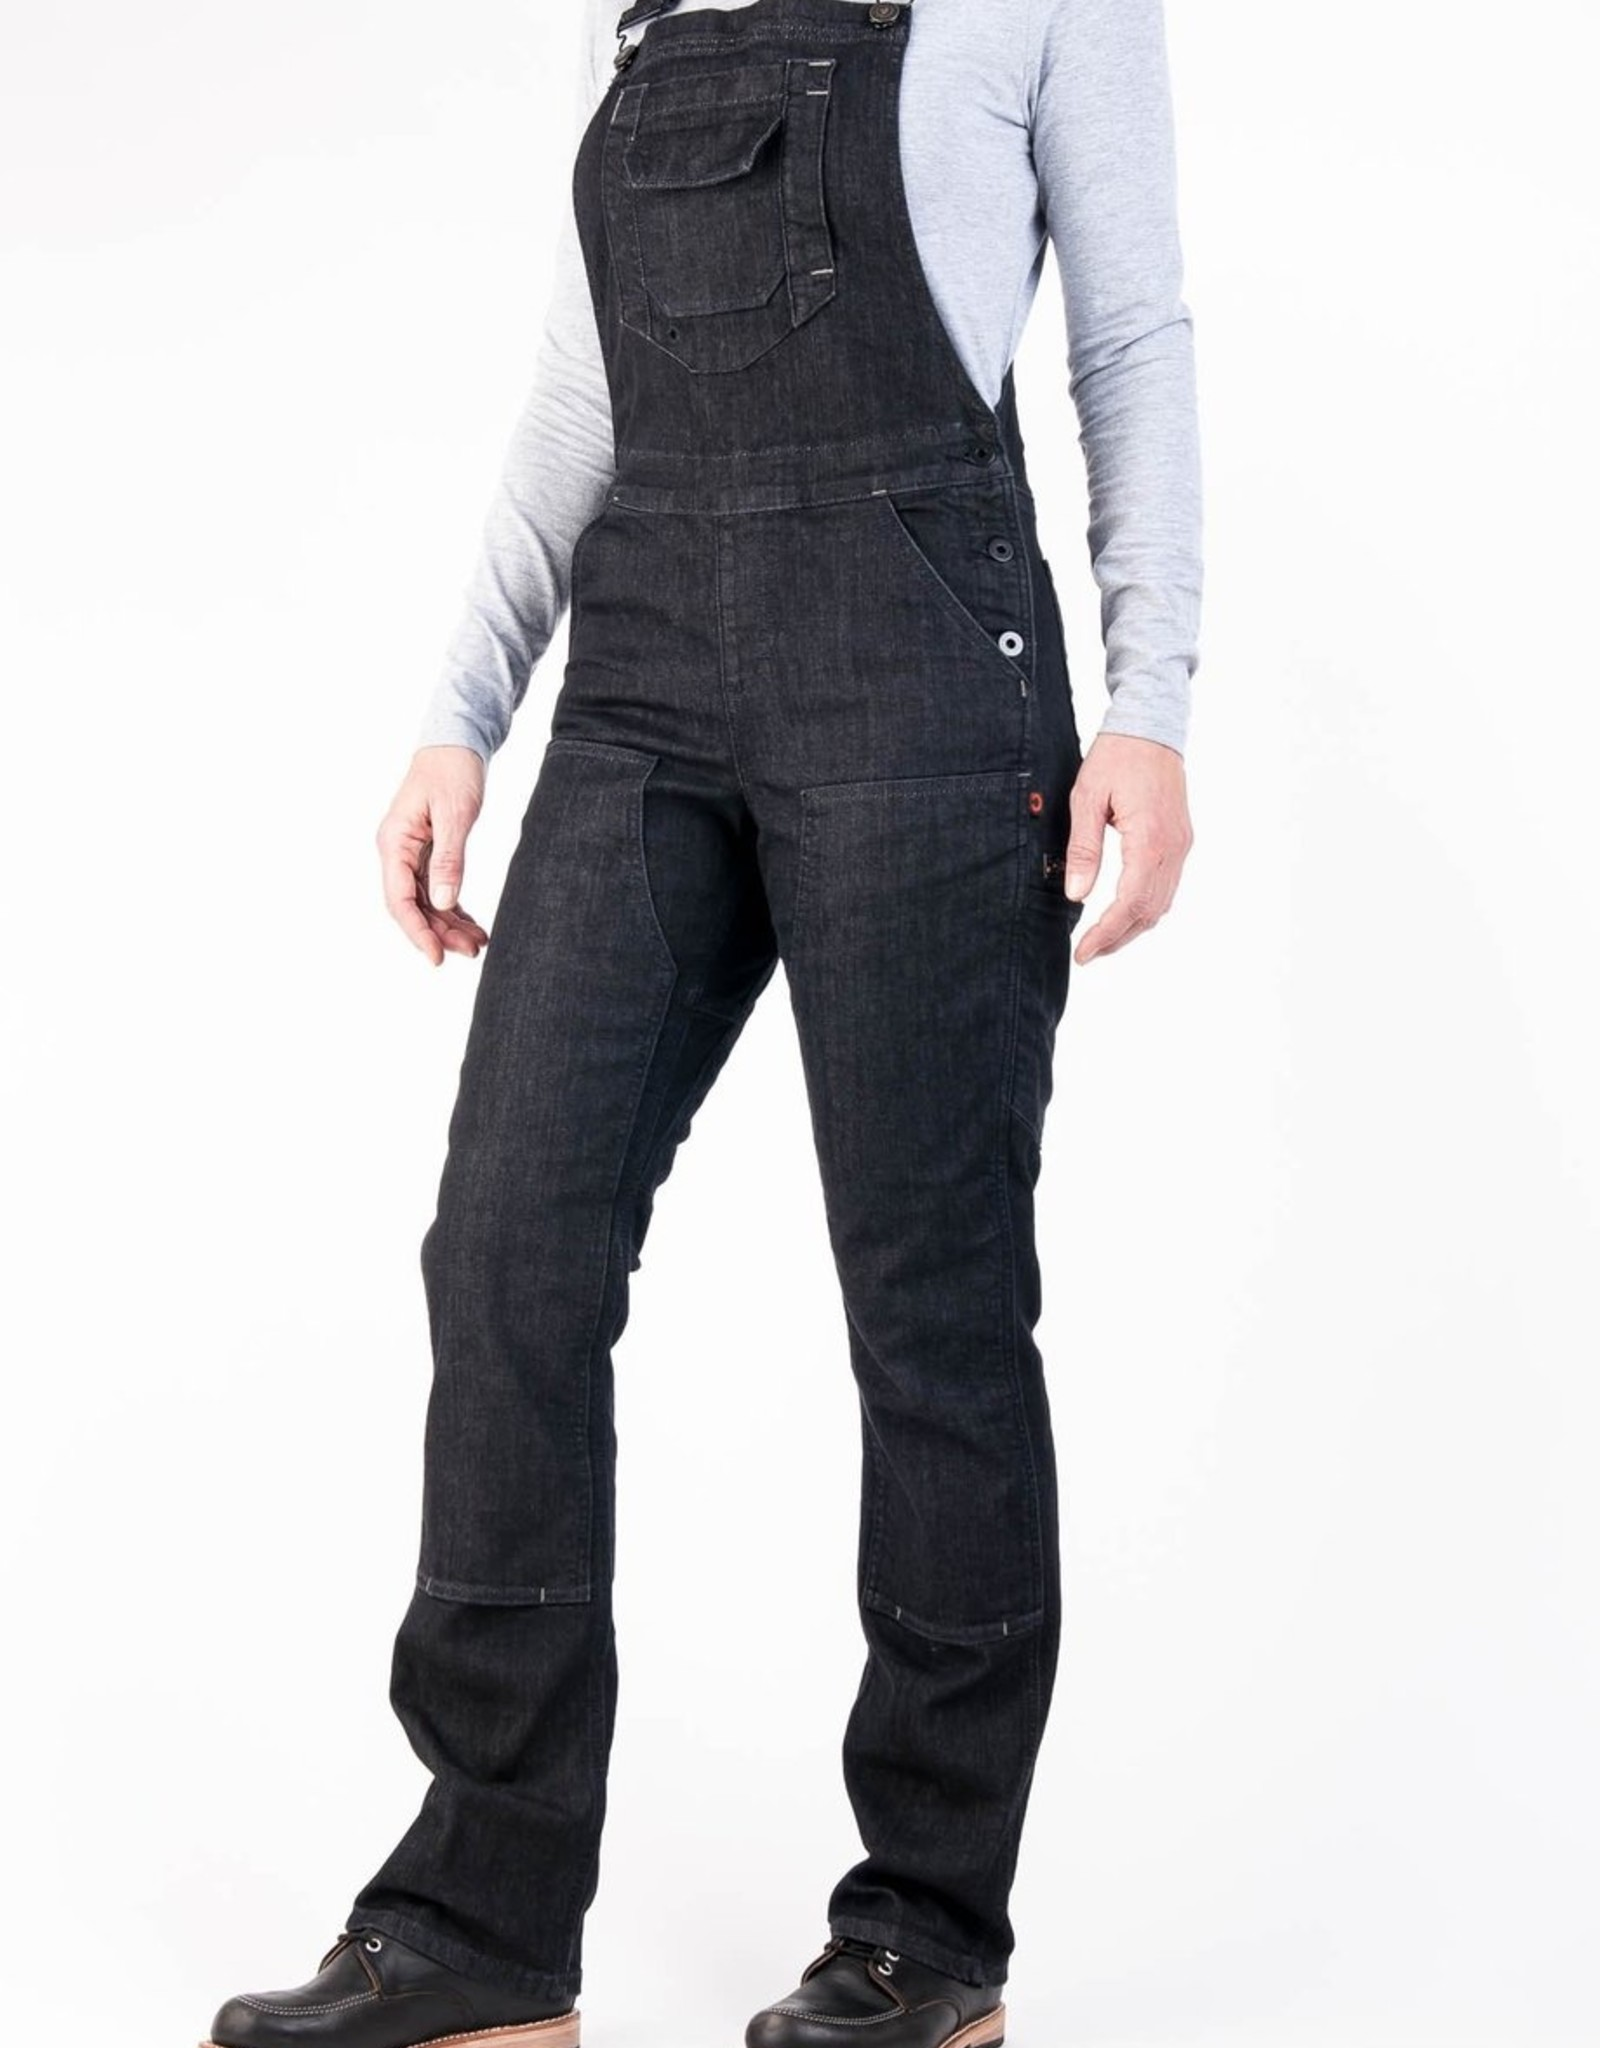 DOVETAIL Dovetail Womens Workwear Freshley Overall  - Black